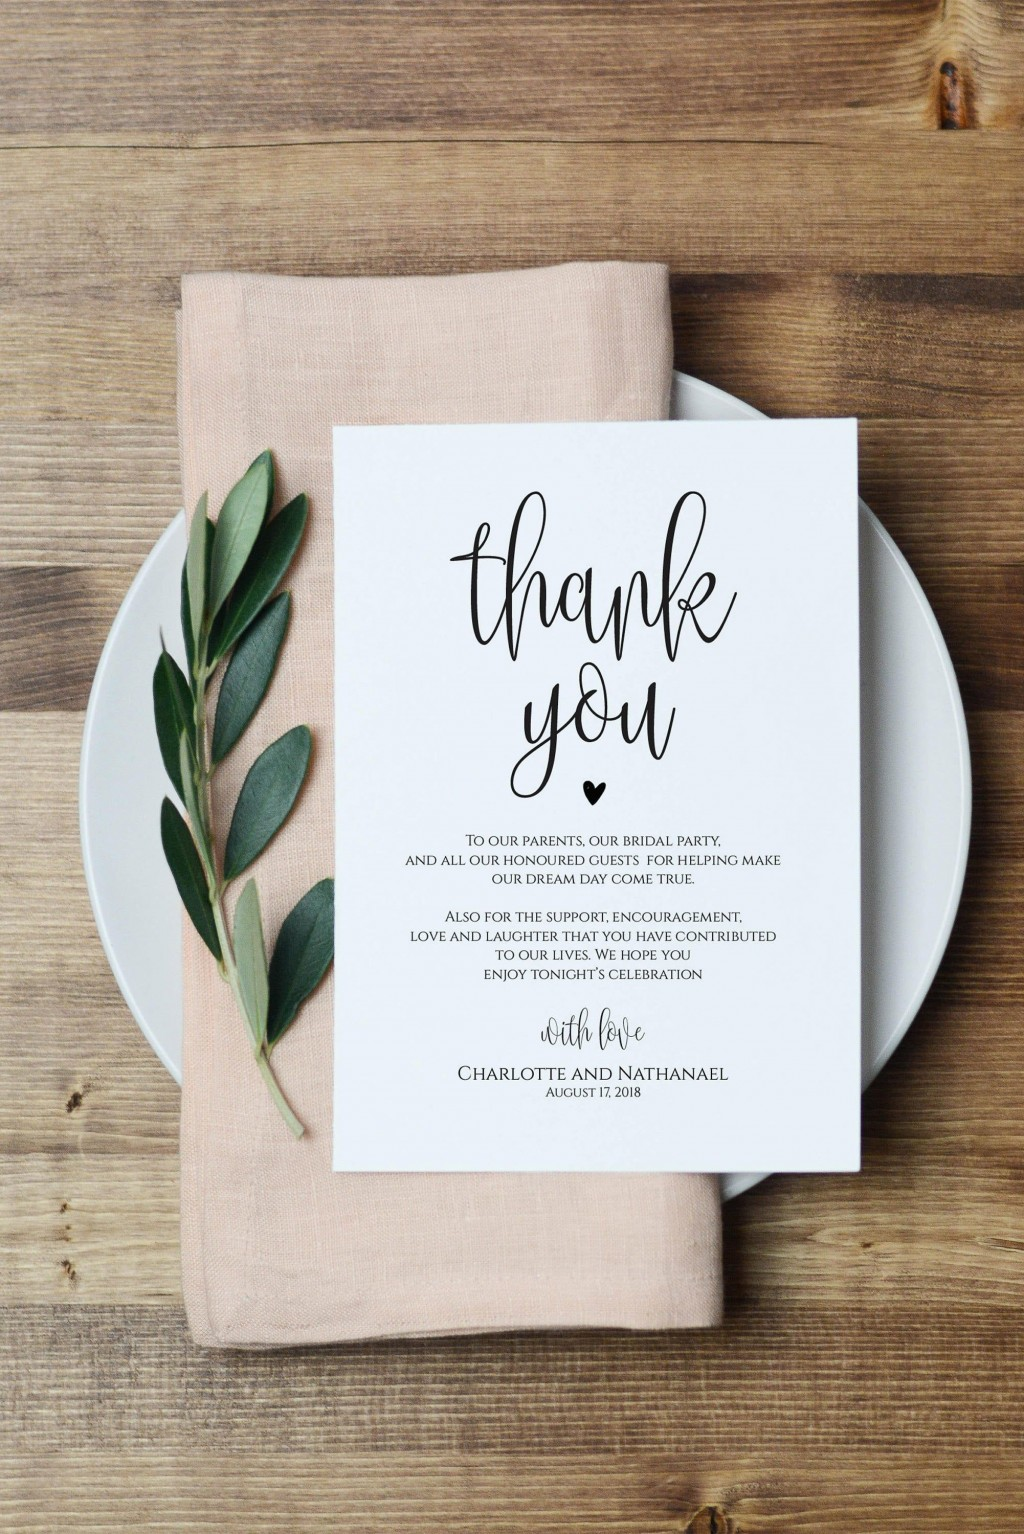 000 Amazing Thank You Note For Wedding Guest Template Picture  CardLarge